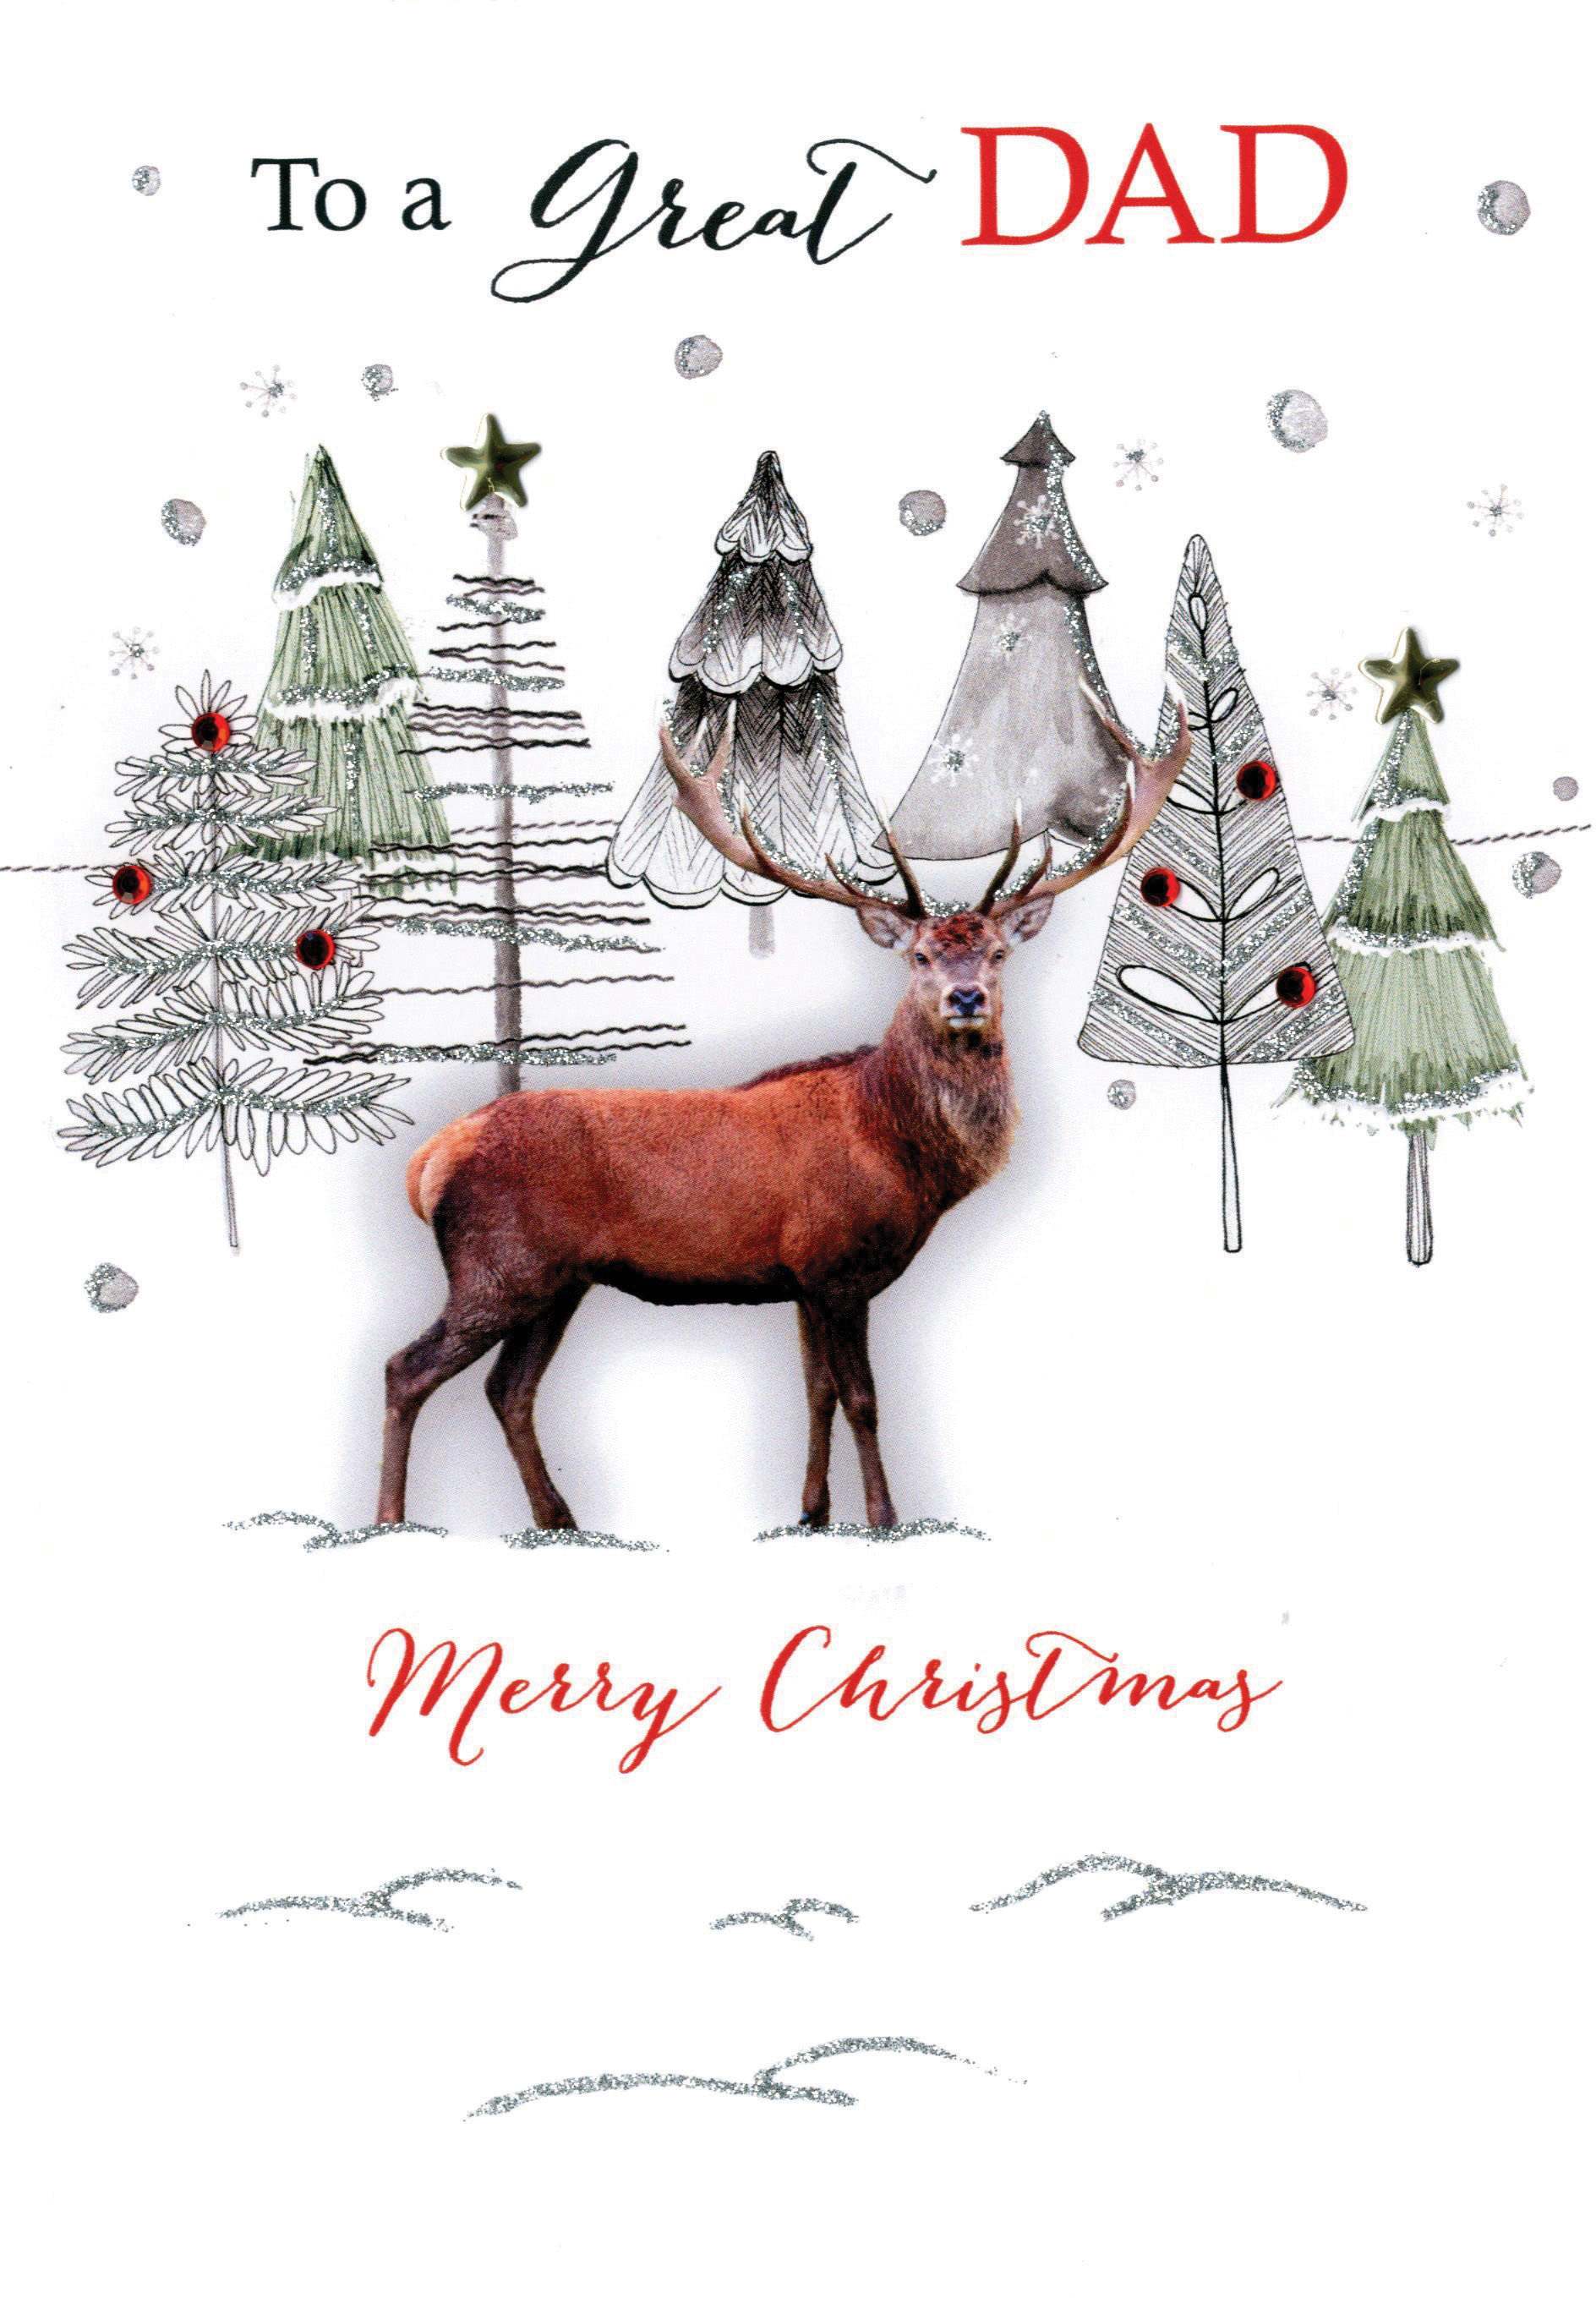 Great Dad Embellished Christmas Card | Cards